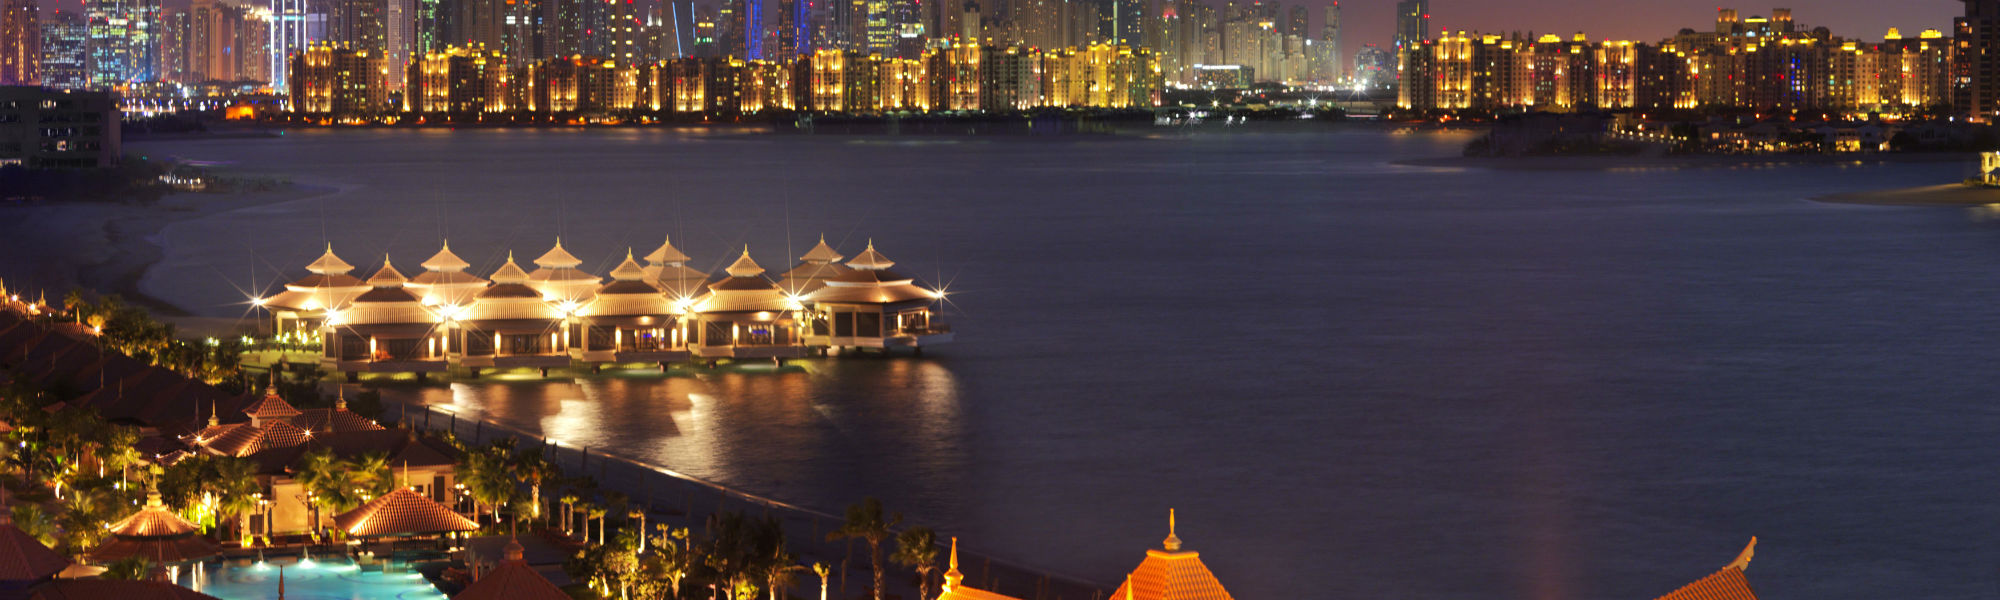 Night views of the Anantara The Palm Dubai Anantara The Palm Dubai